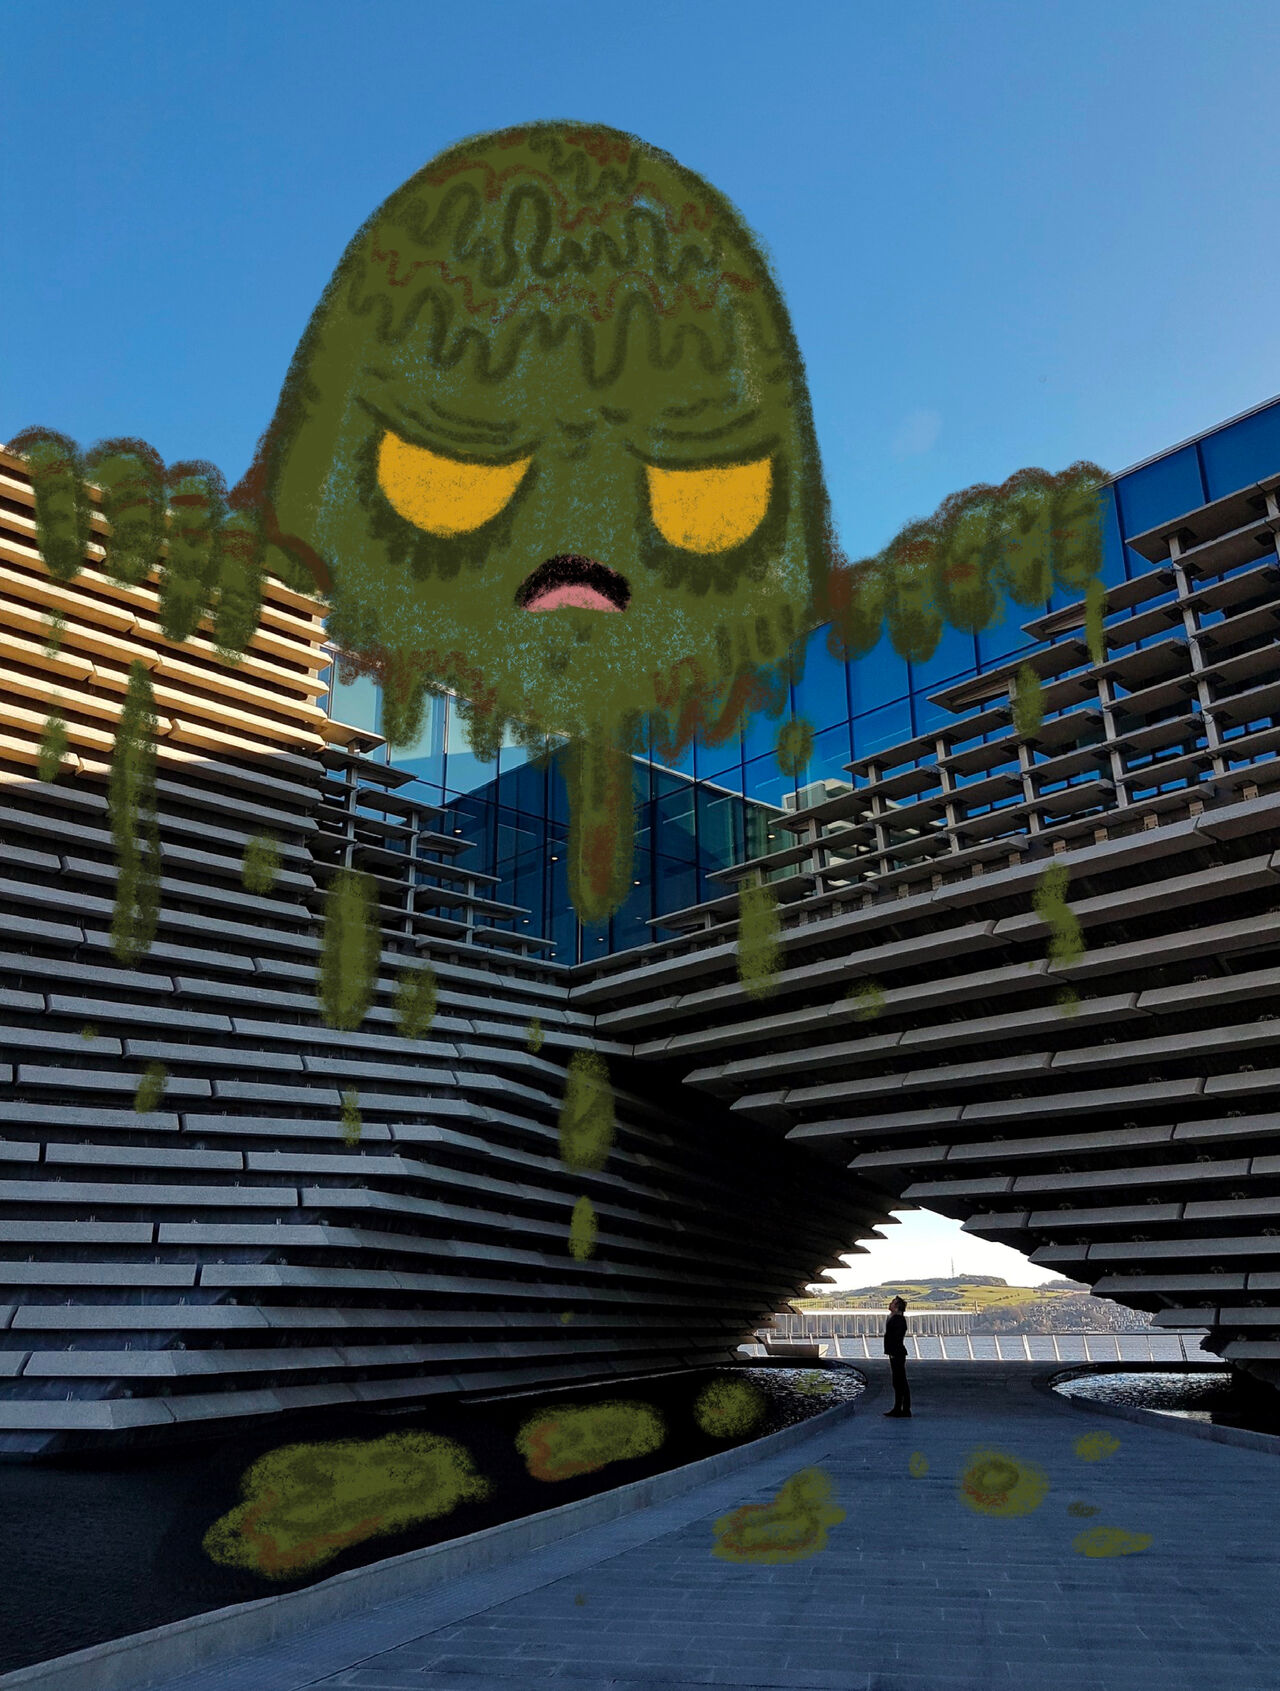 Photo of V&A Dundee with a huge slime monster illustrated over the top as if it's draped over the building.